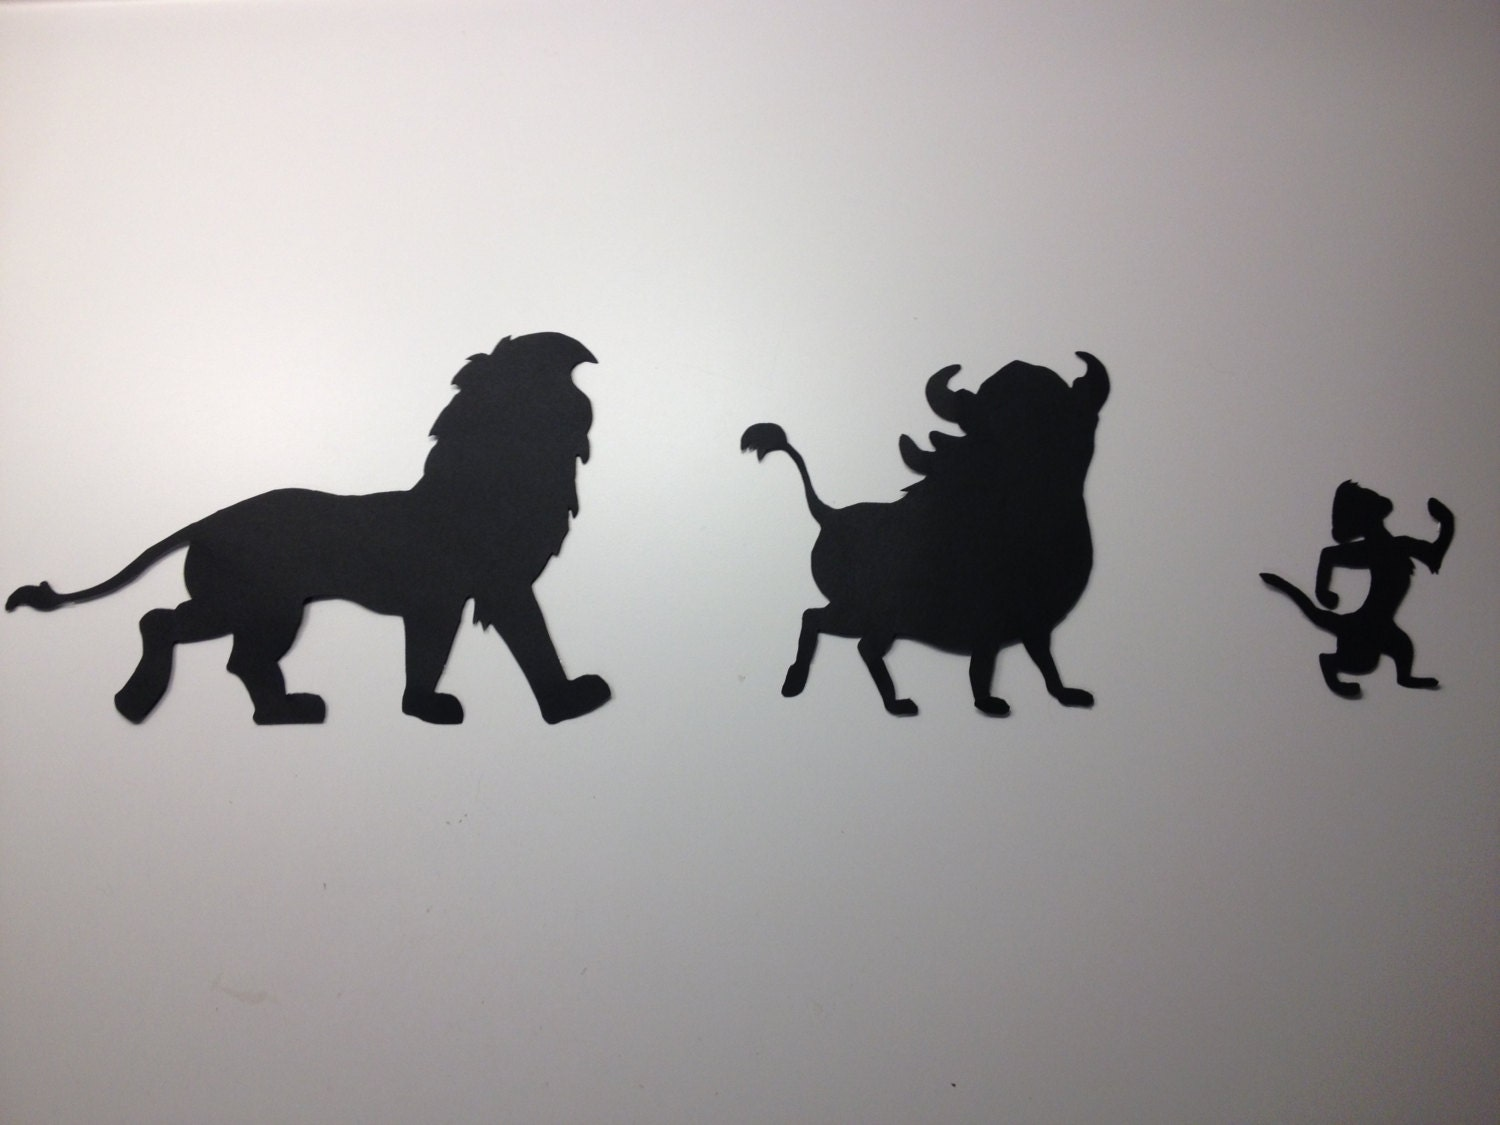 Lion King Silhouettes Disney Silhouette Cut Out Designs Wall Decor By